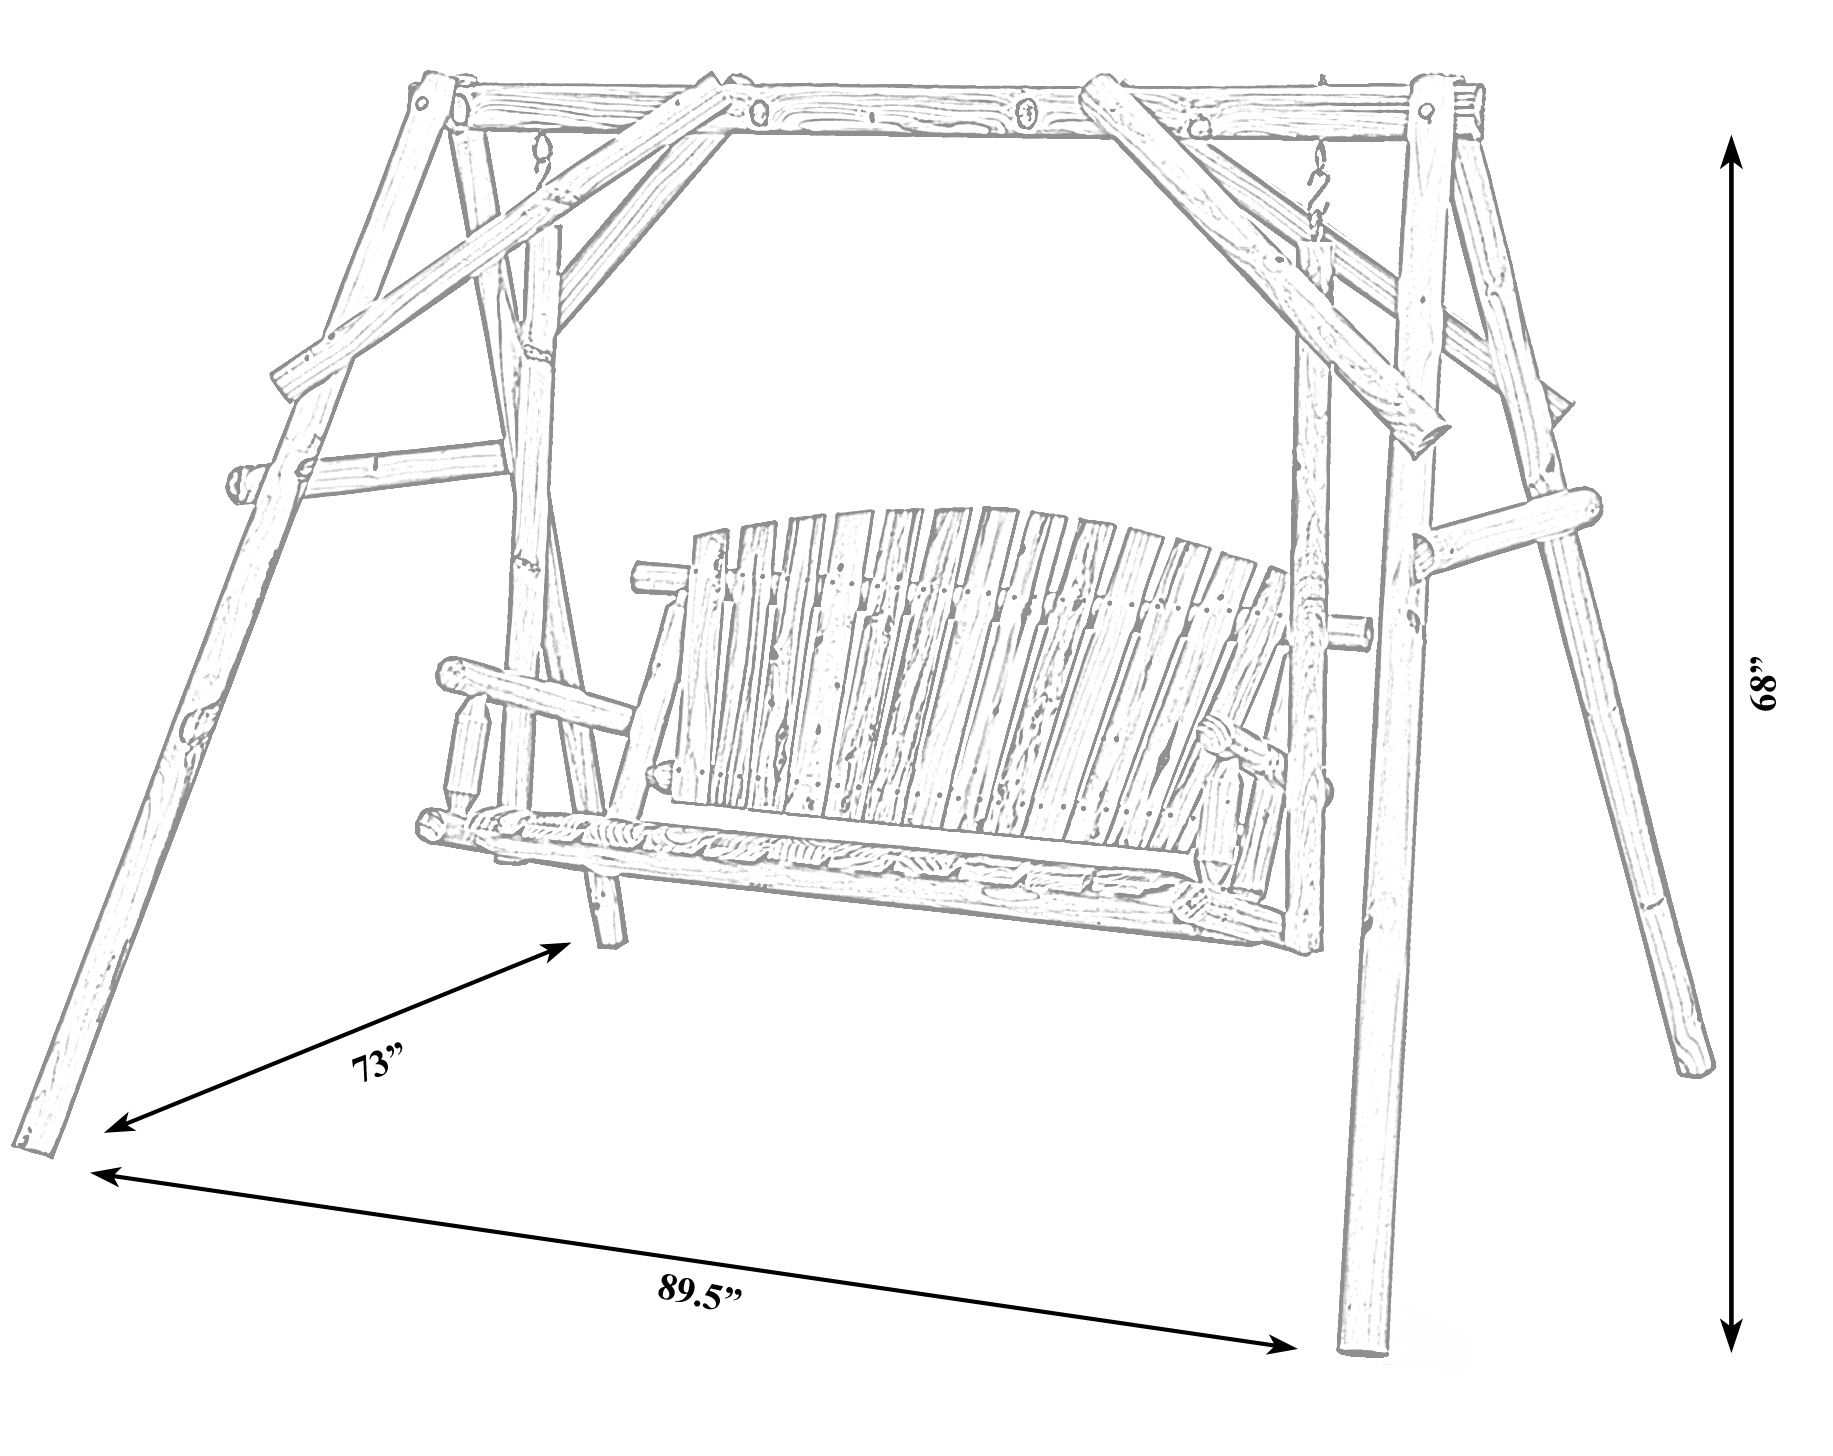 Swing 651355234703 Bench Wooden Wooden Wood Log Patio 2 Intended For 2 Person White Wood Outdoor Swings (View 16 of 25)